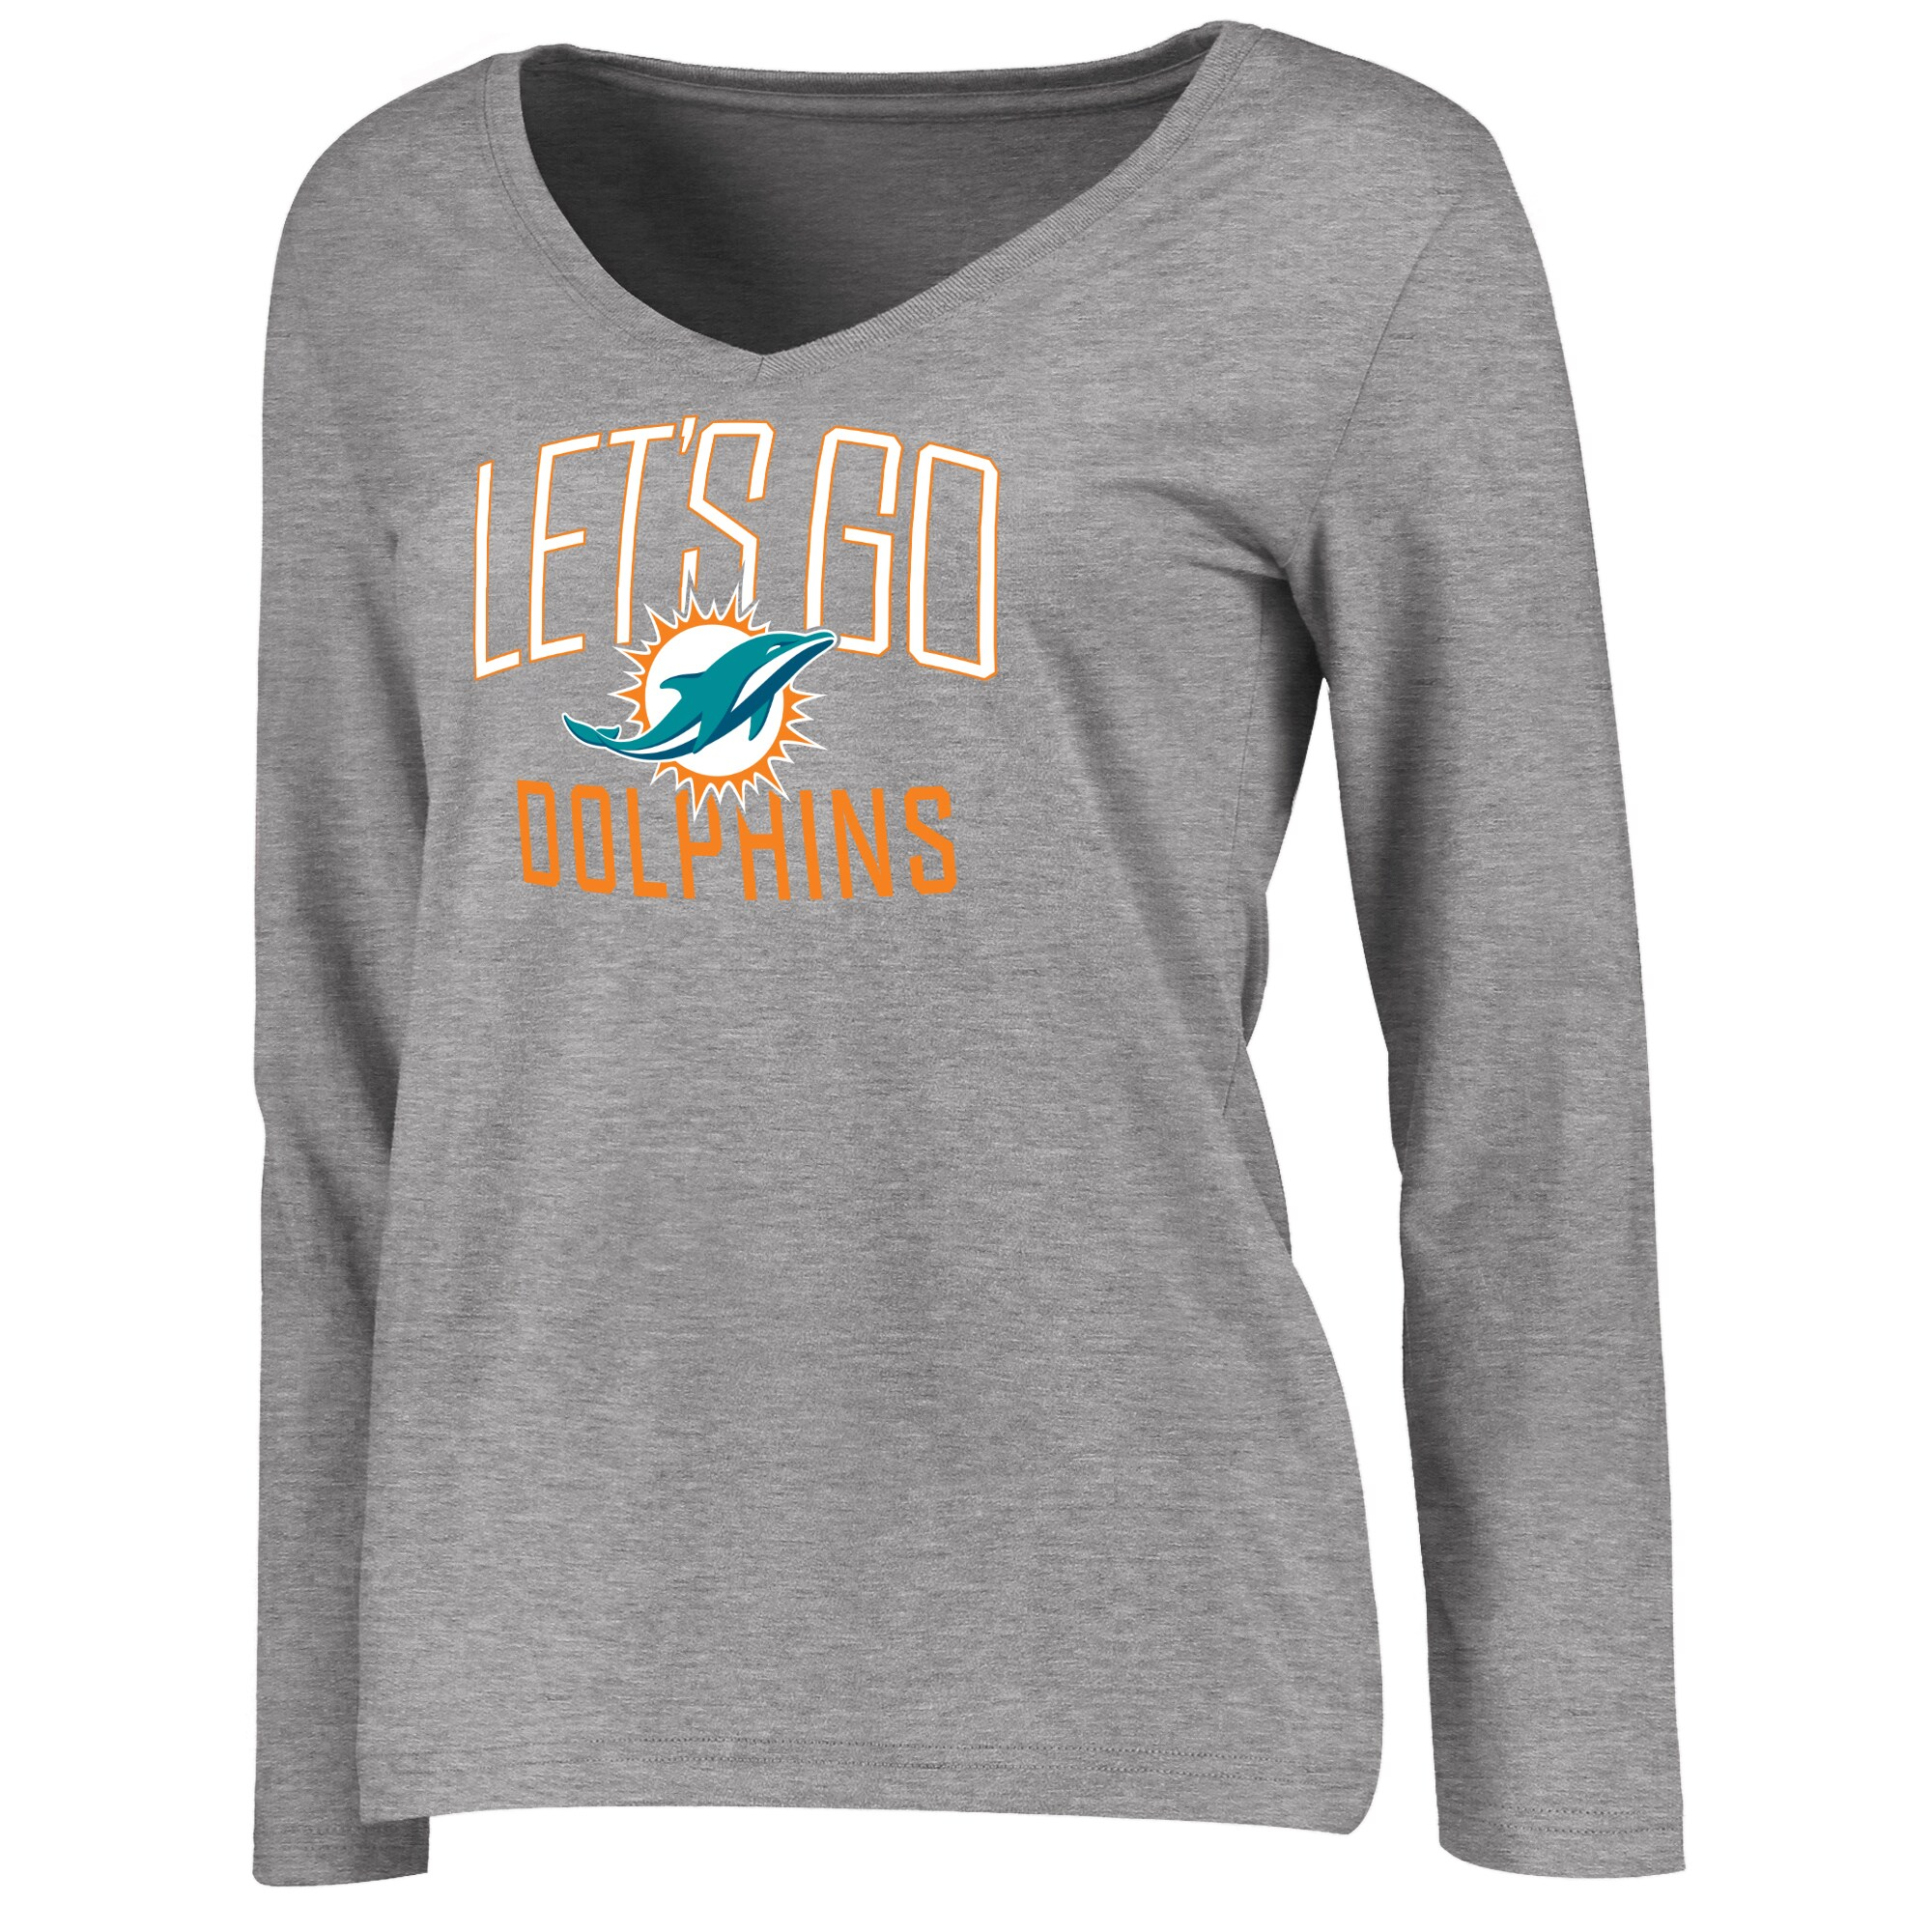 Miami Dolphins NFL Pro Line Women's Team Chant Long Sleeve V-Neck T-Shirt - Heathered Gray